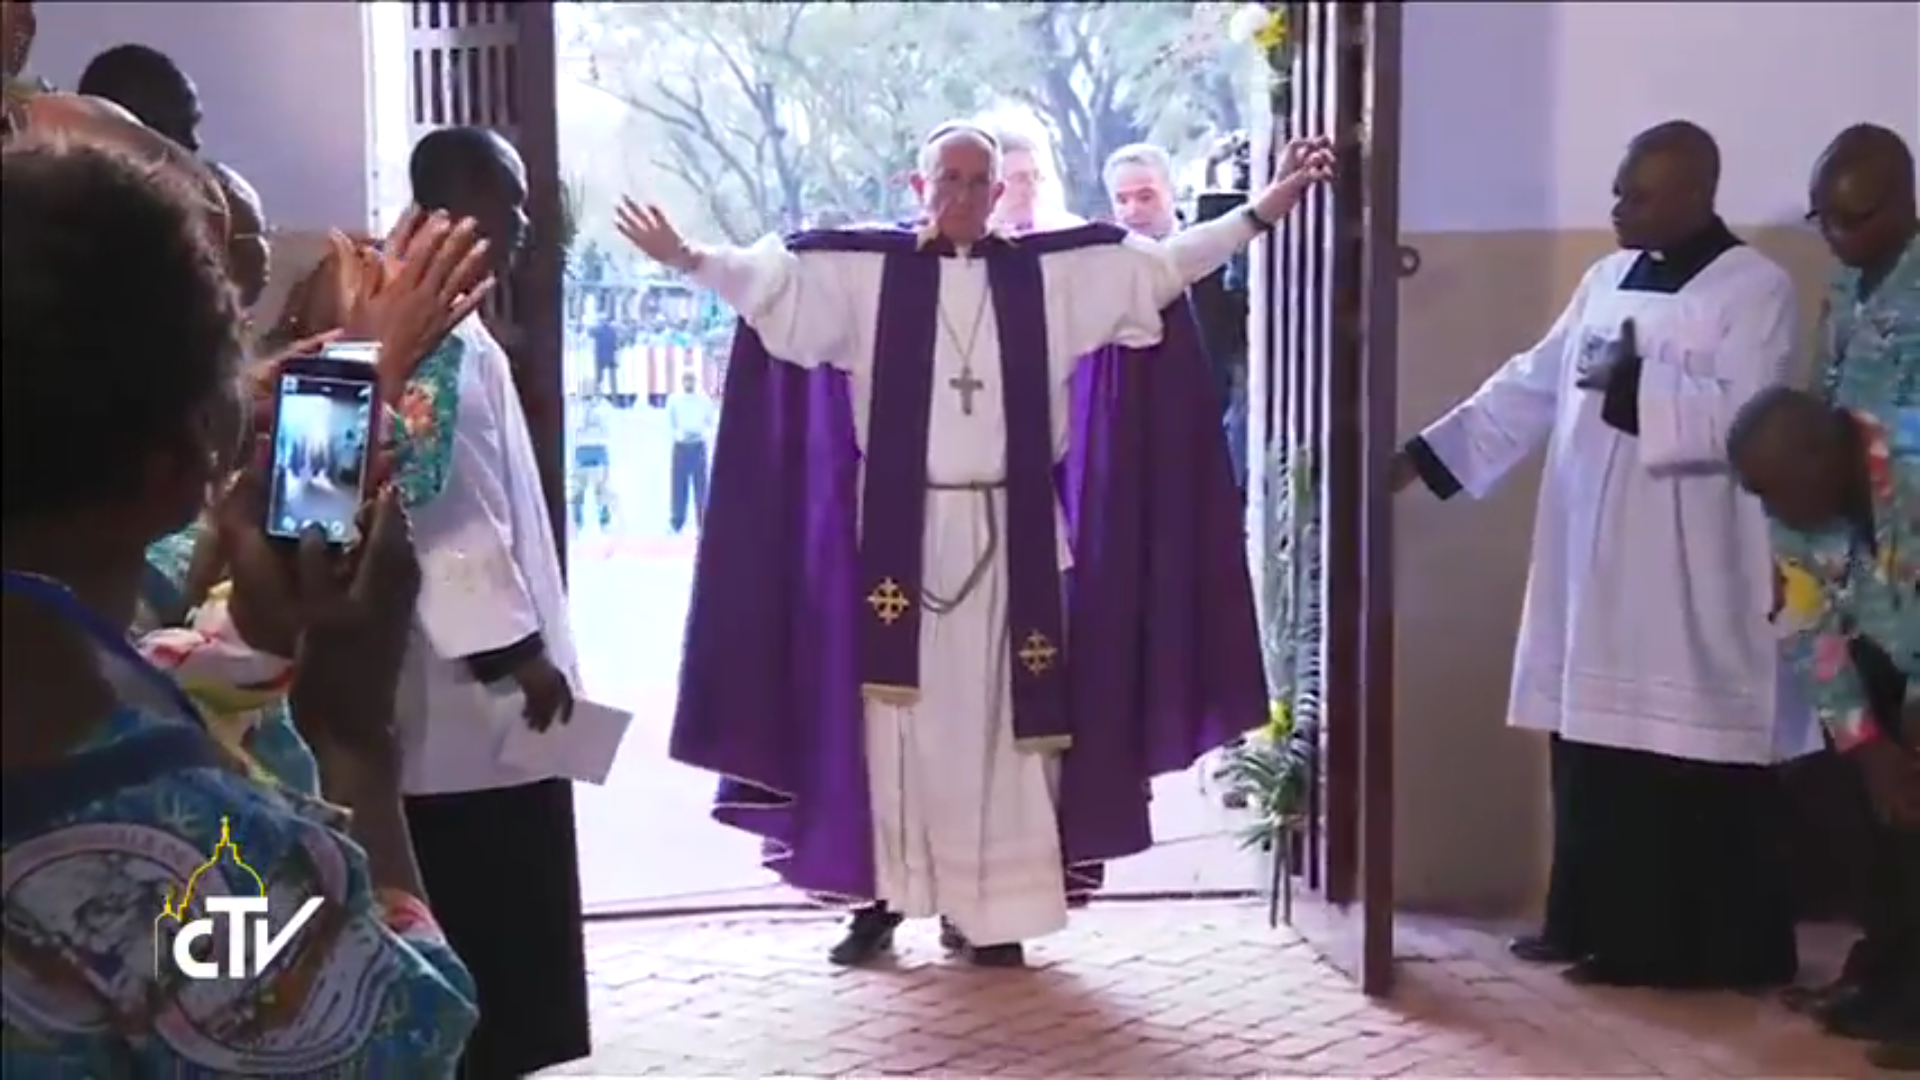 Pope Francis opens first Holy Door of the Jubilee of mercy